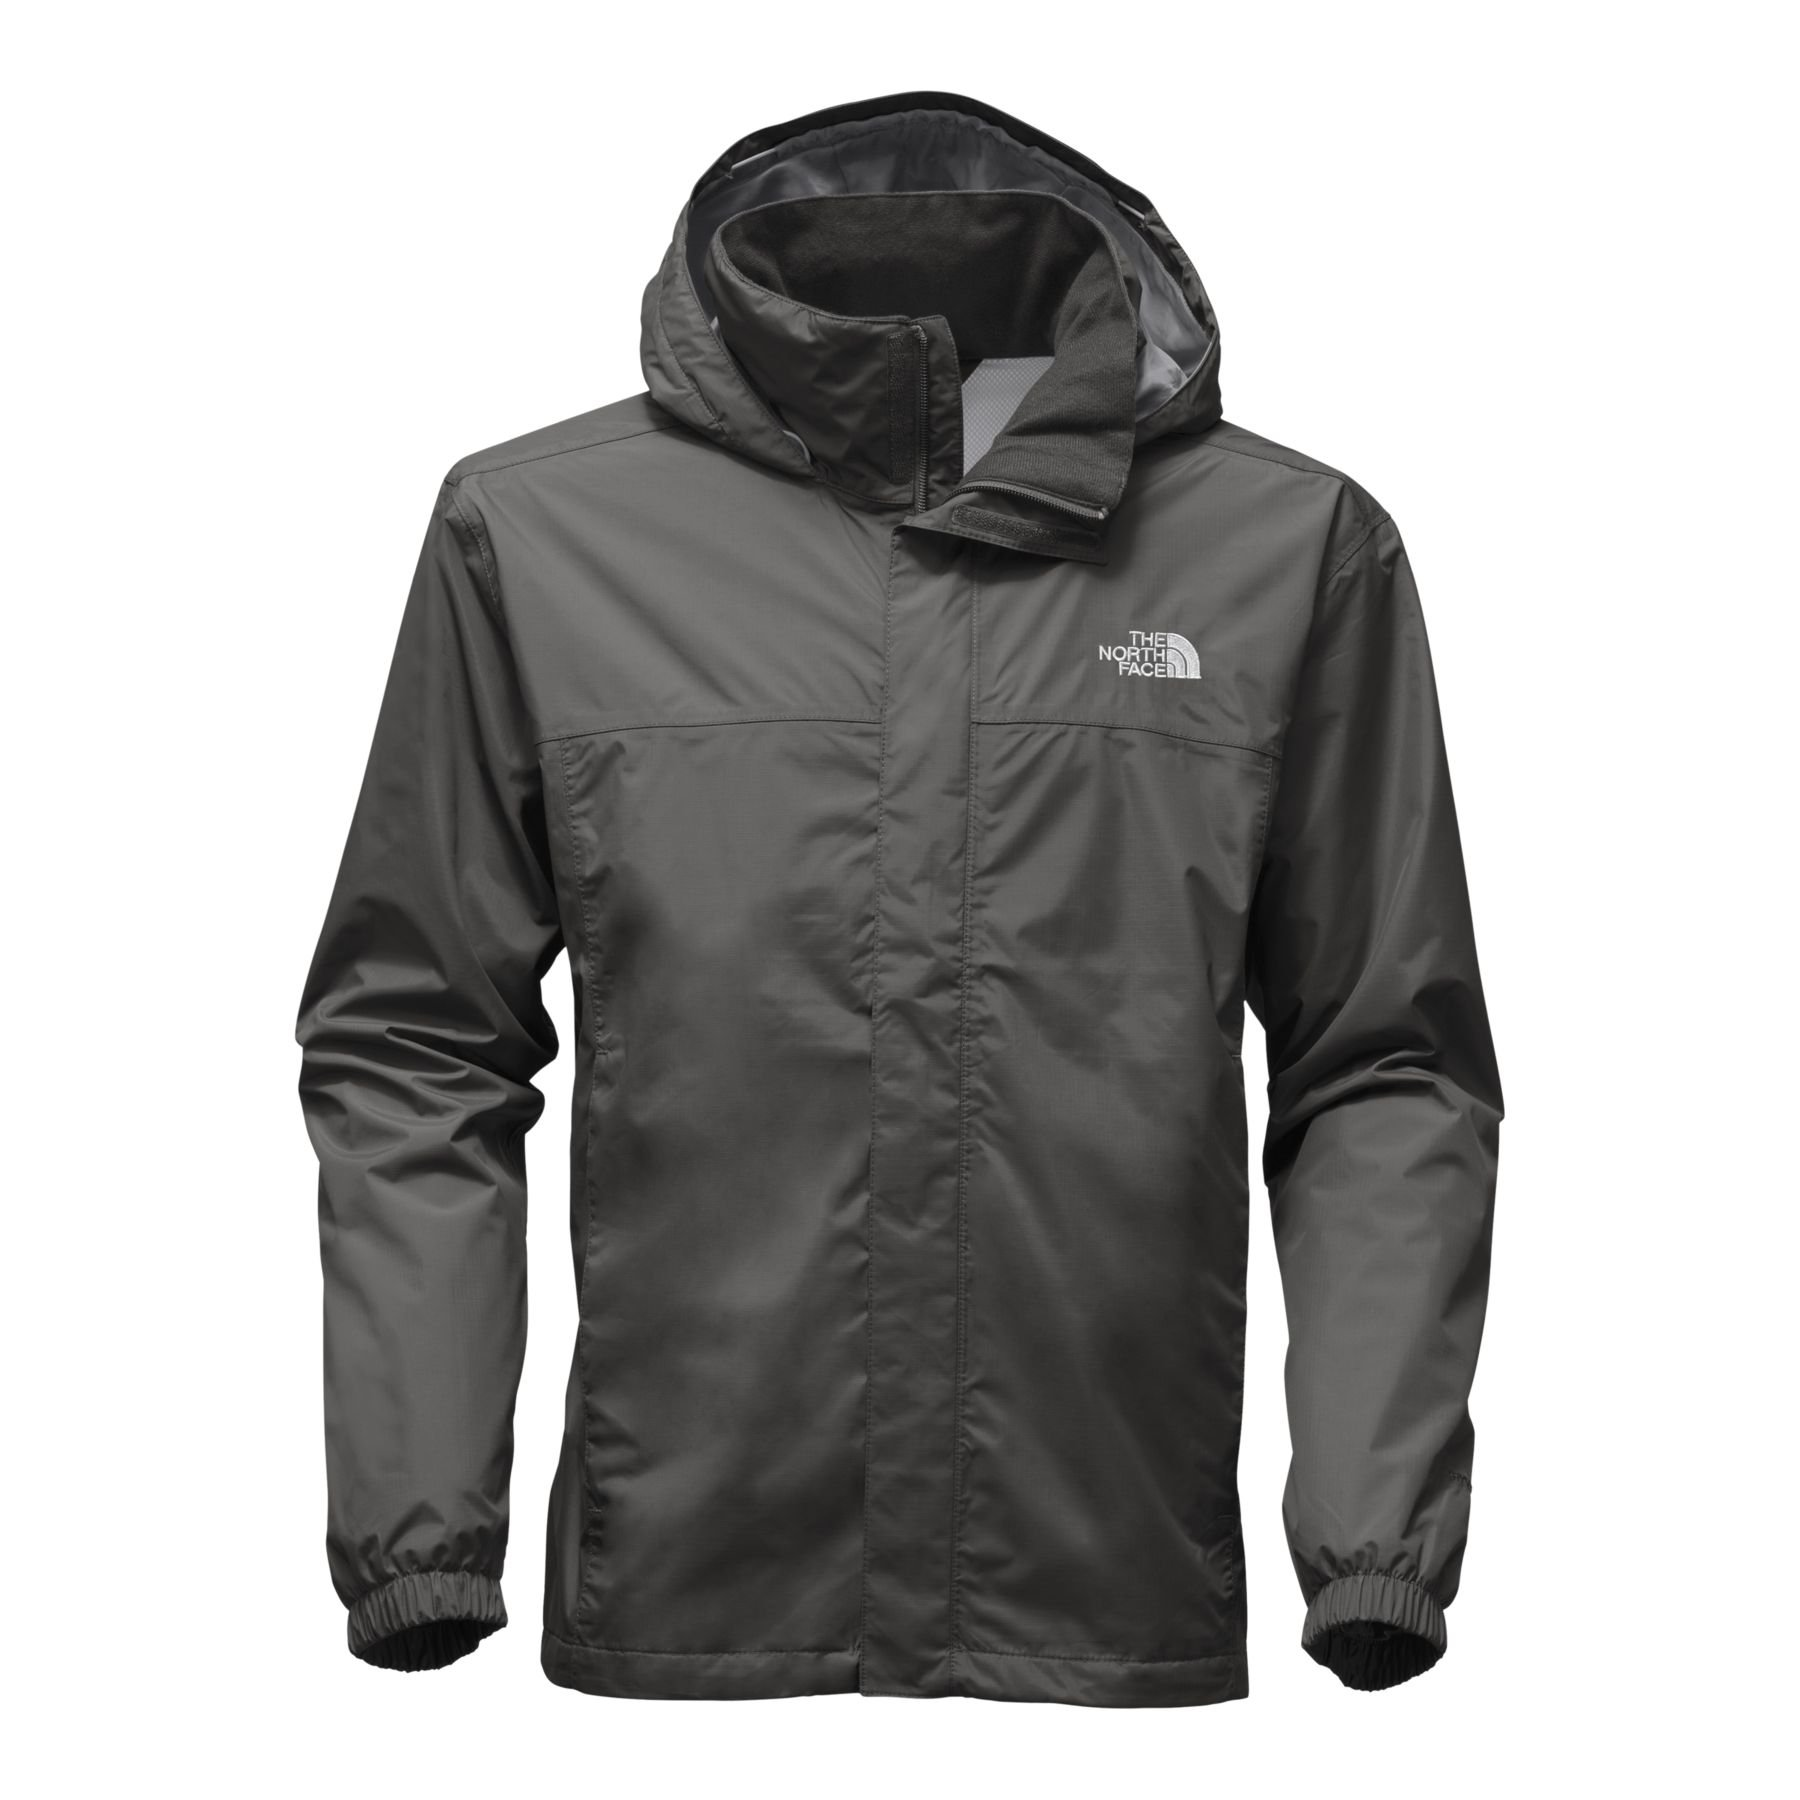 The North Face Men's Resolve 2 Jacket - Asphalt Grey/Mid Grey - 3XL by The North Face